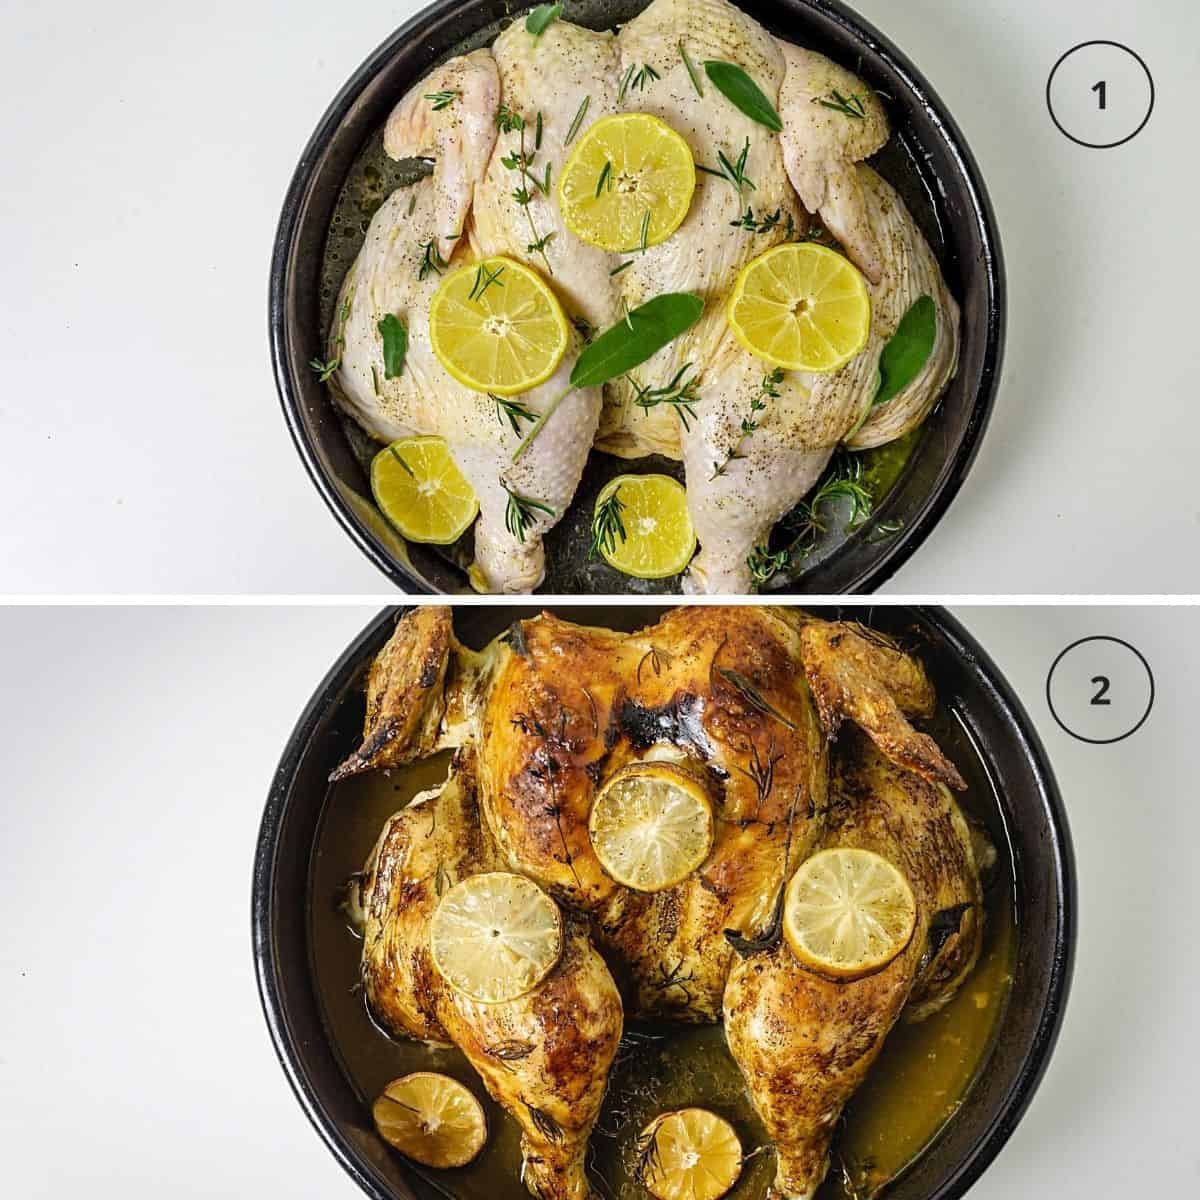 Steps to make a baked chicken